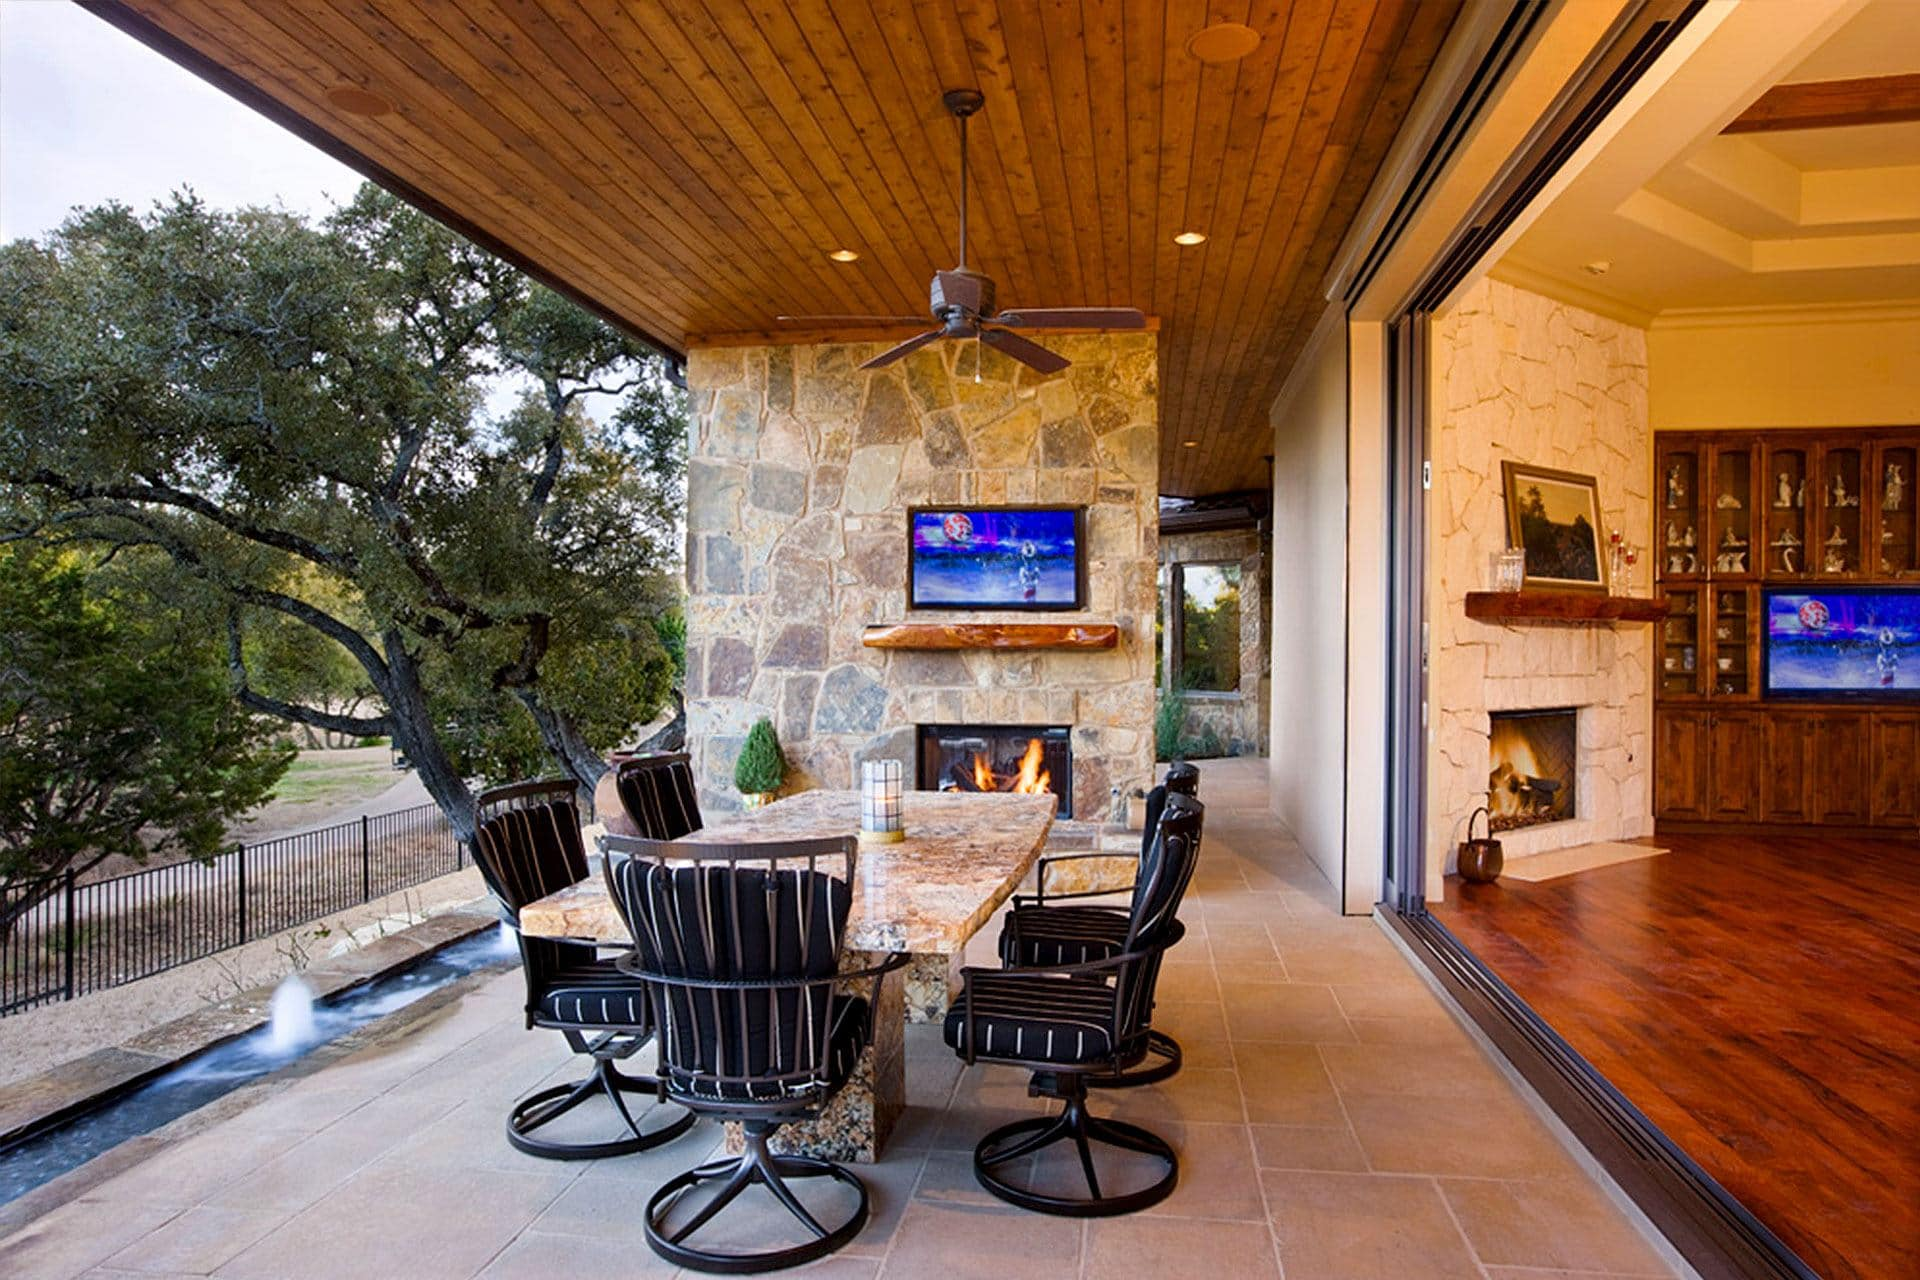 Texas Hill Country Tuscan 6401 - Outdoor Living Room with Wall Television